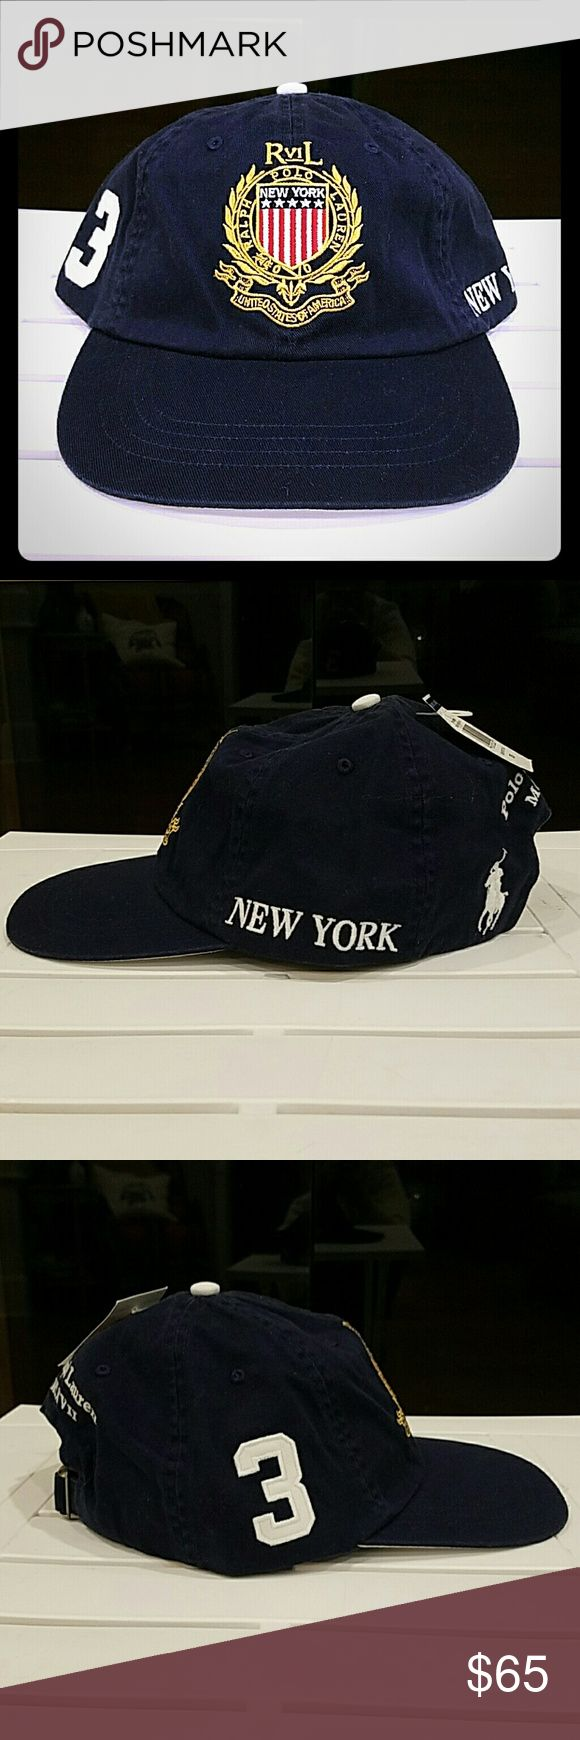 Polo Ralph Lauren Men's NY USA Crest Hat NWT Unisex Polo Ralph Lauren NY USA Crest Adjustable Hat. ?PRICE FIRM AT $65. ?? NO TRADES!! Polo by Ralph Lauren Accessories Hats